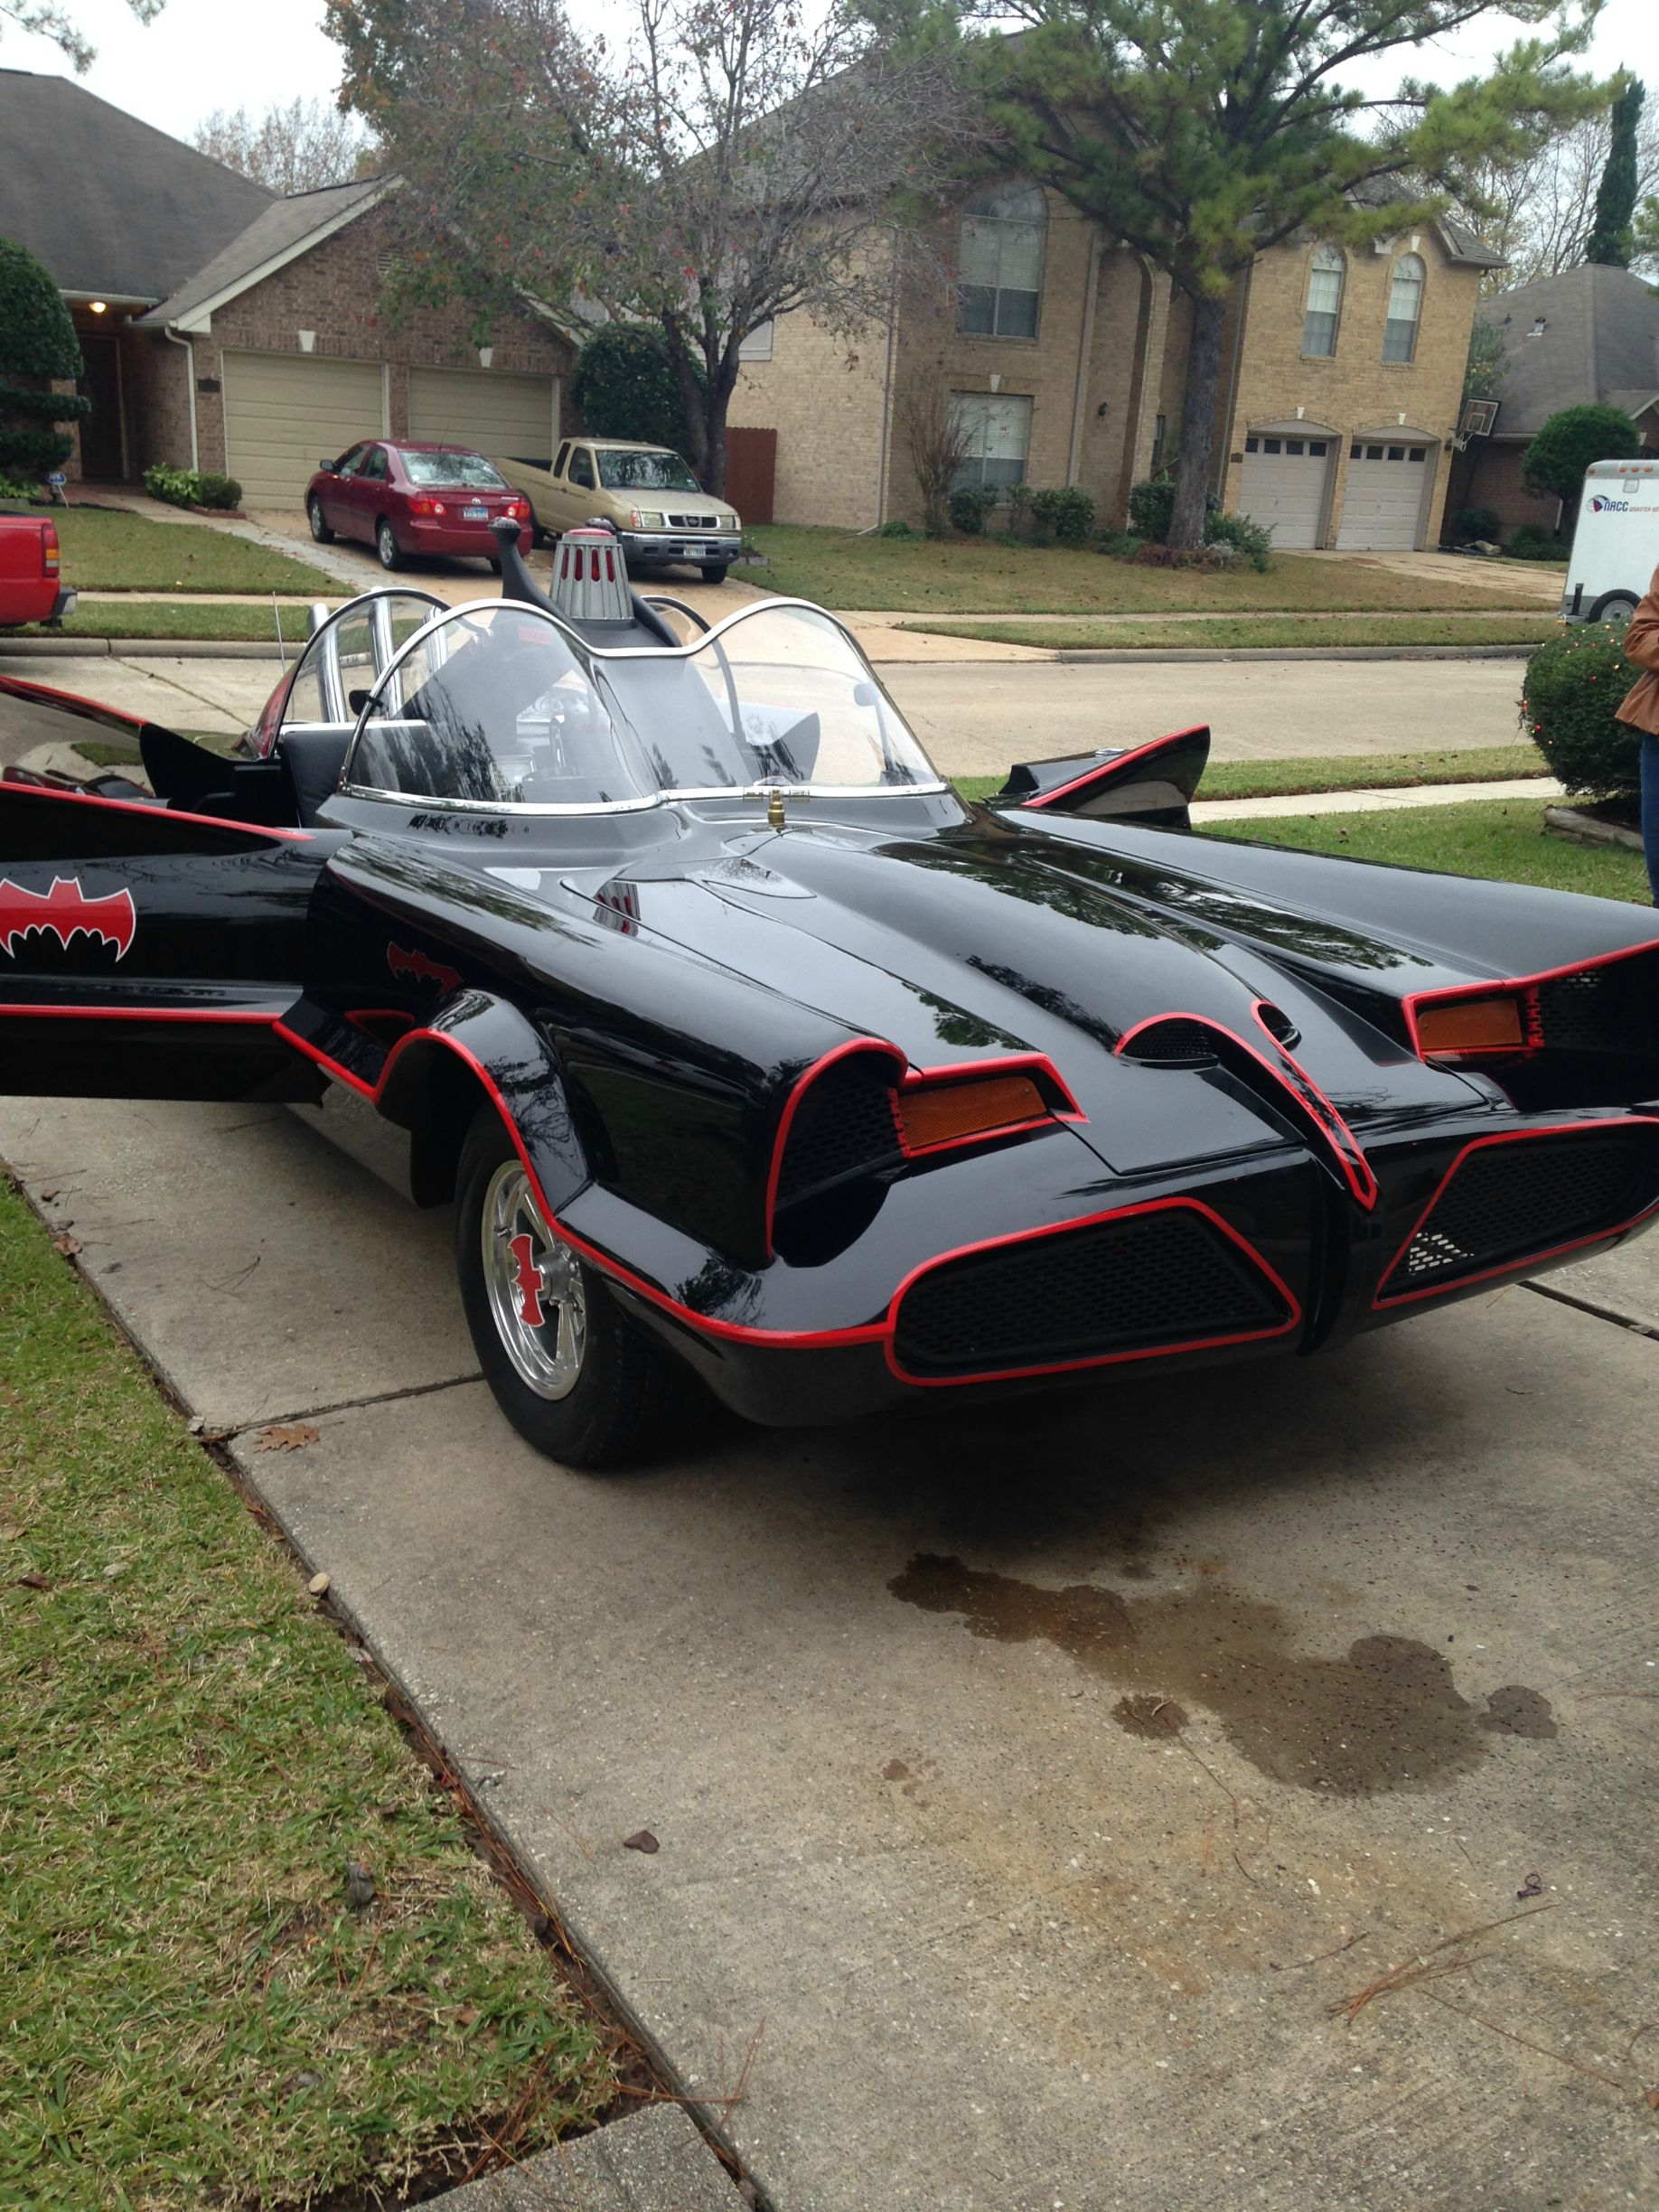 1966 Batmobile Replica Took 9 Years To Build Texan Batman